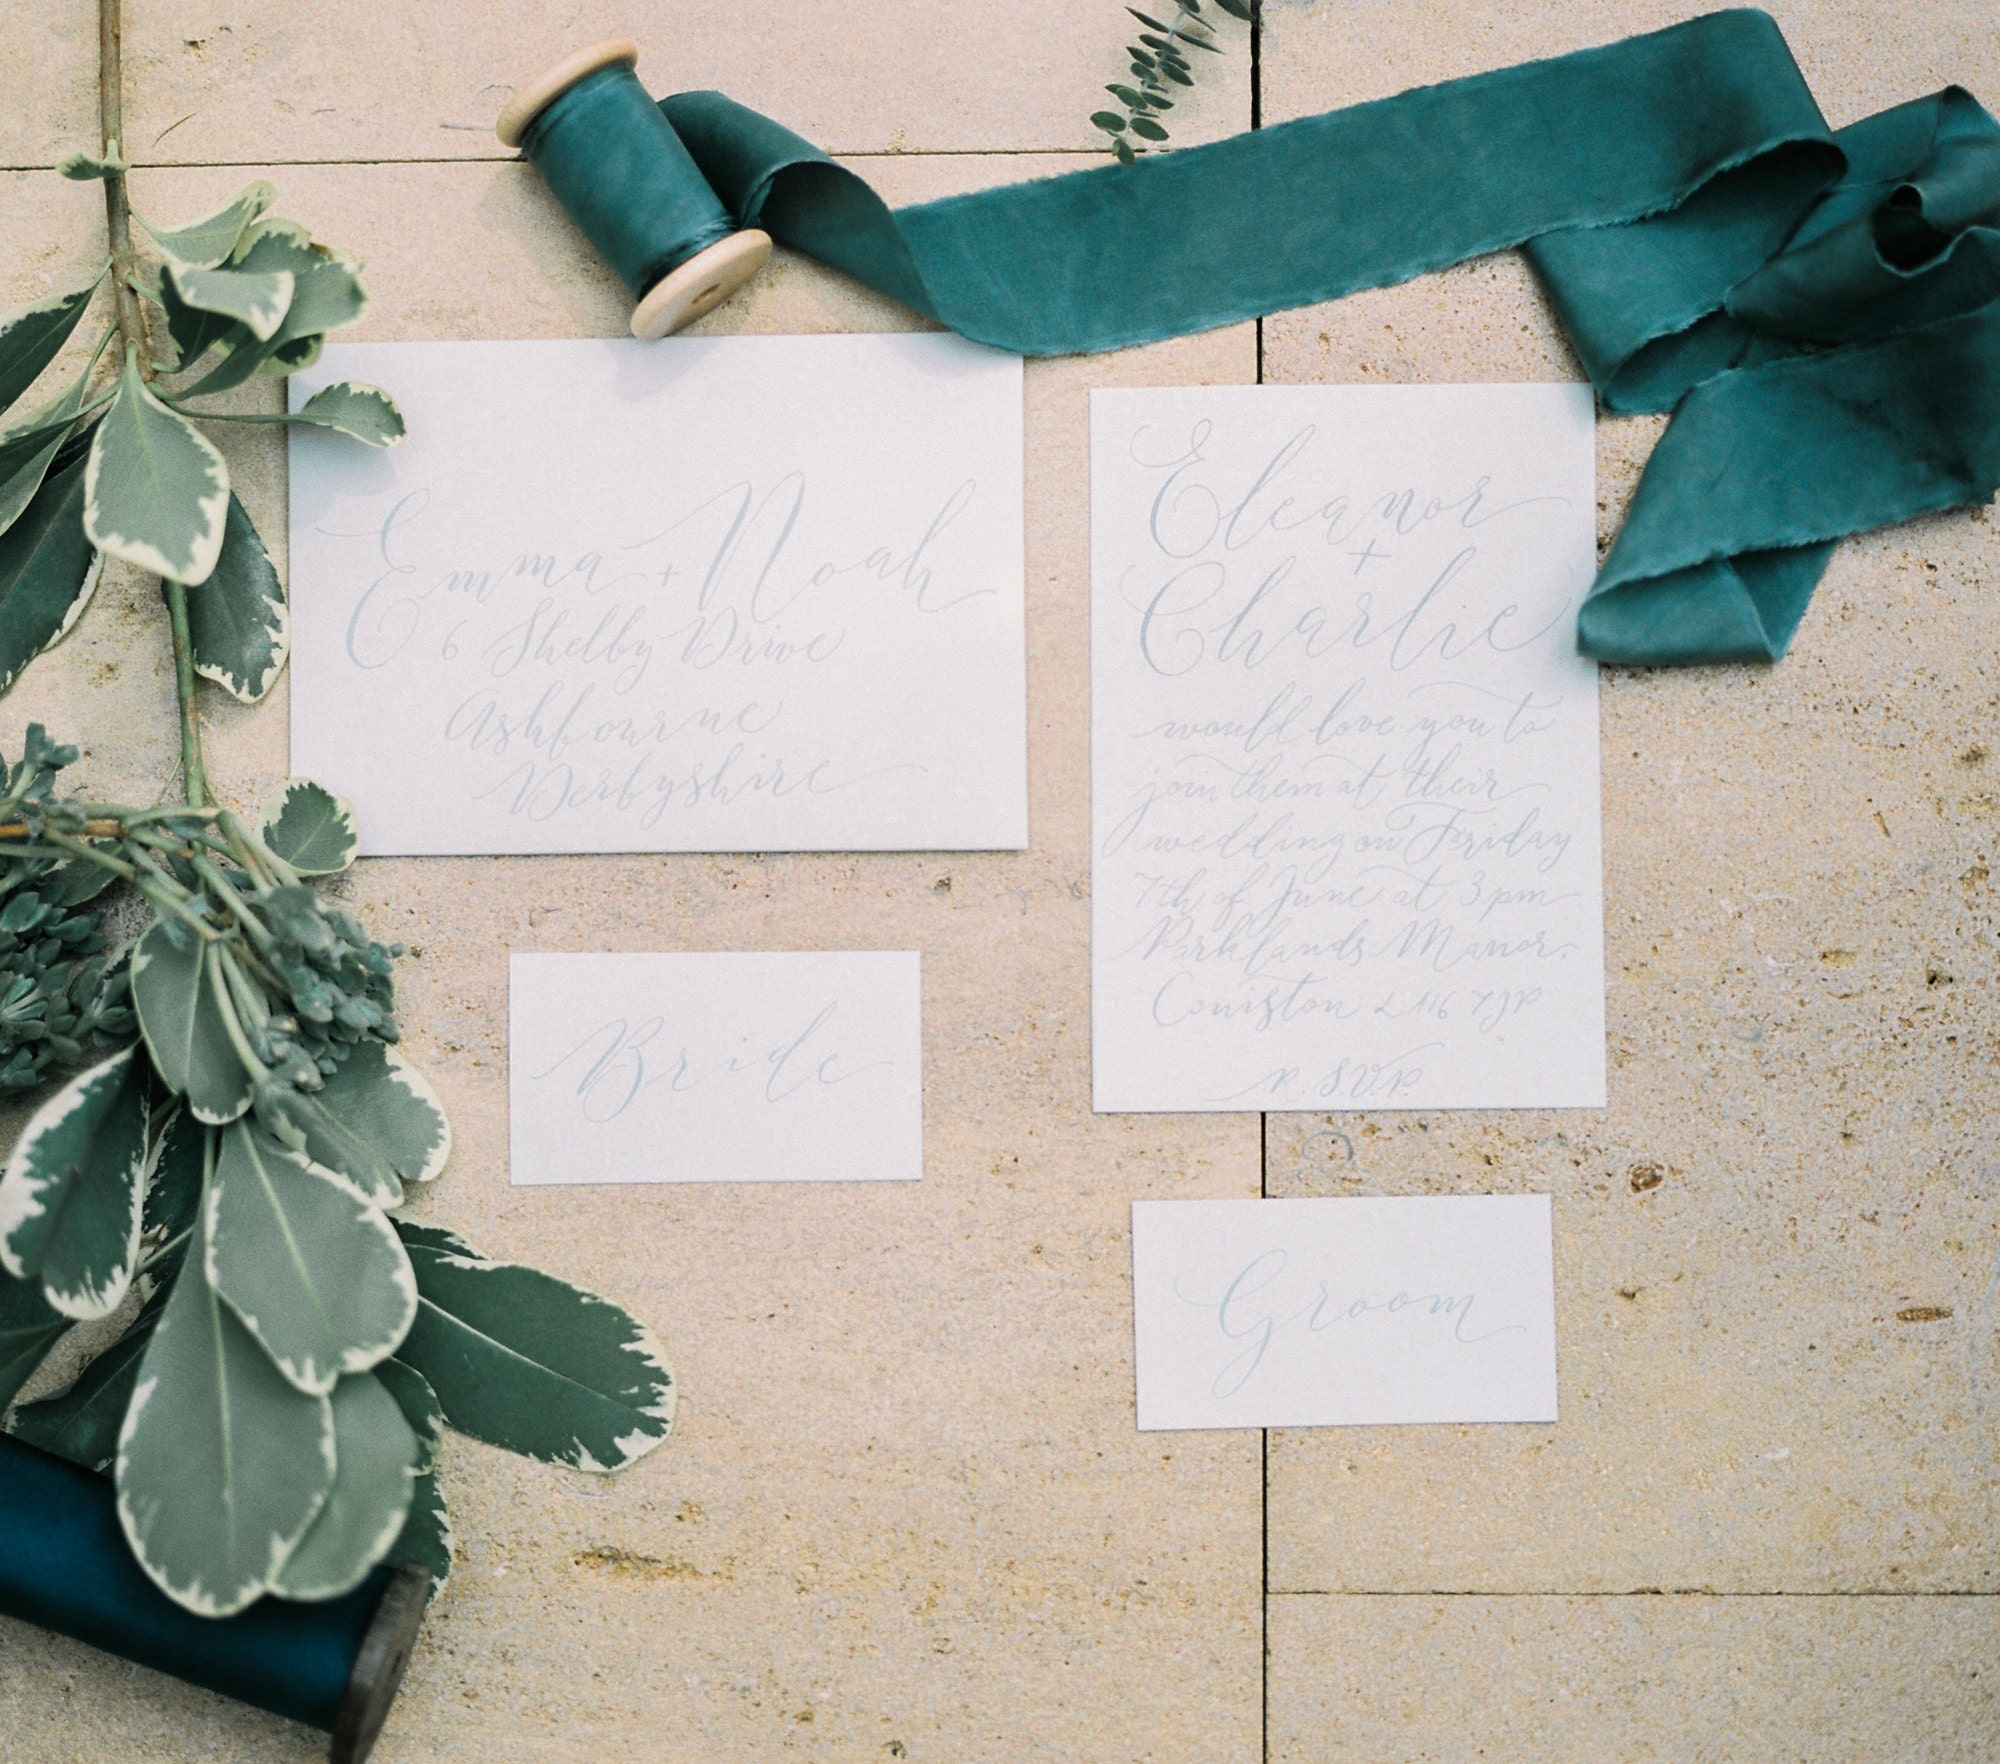 Calligraphy photography by Katie Julia